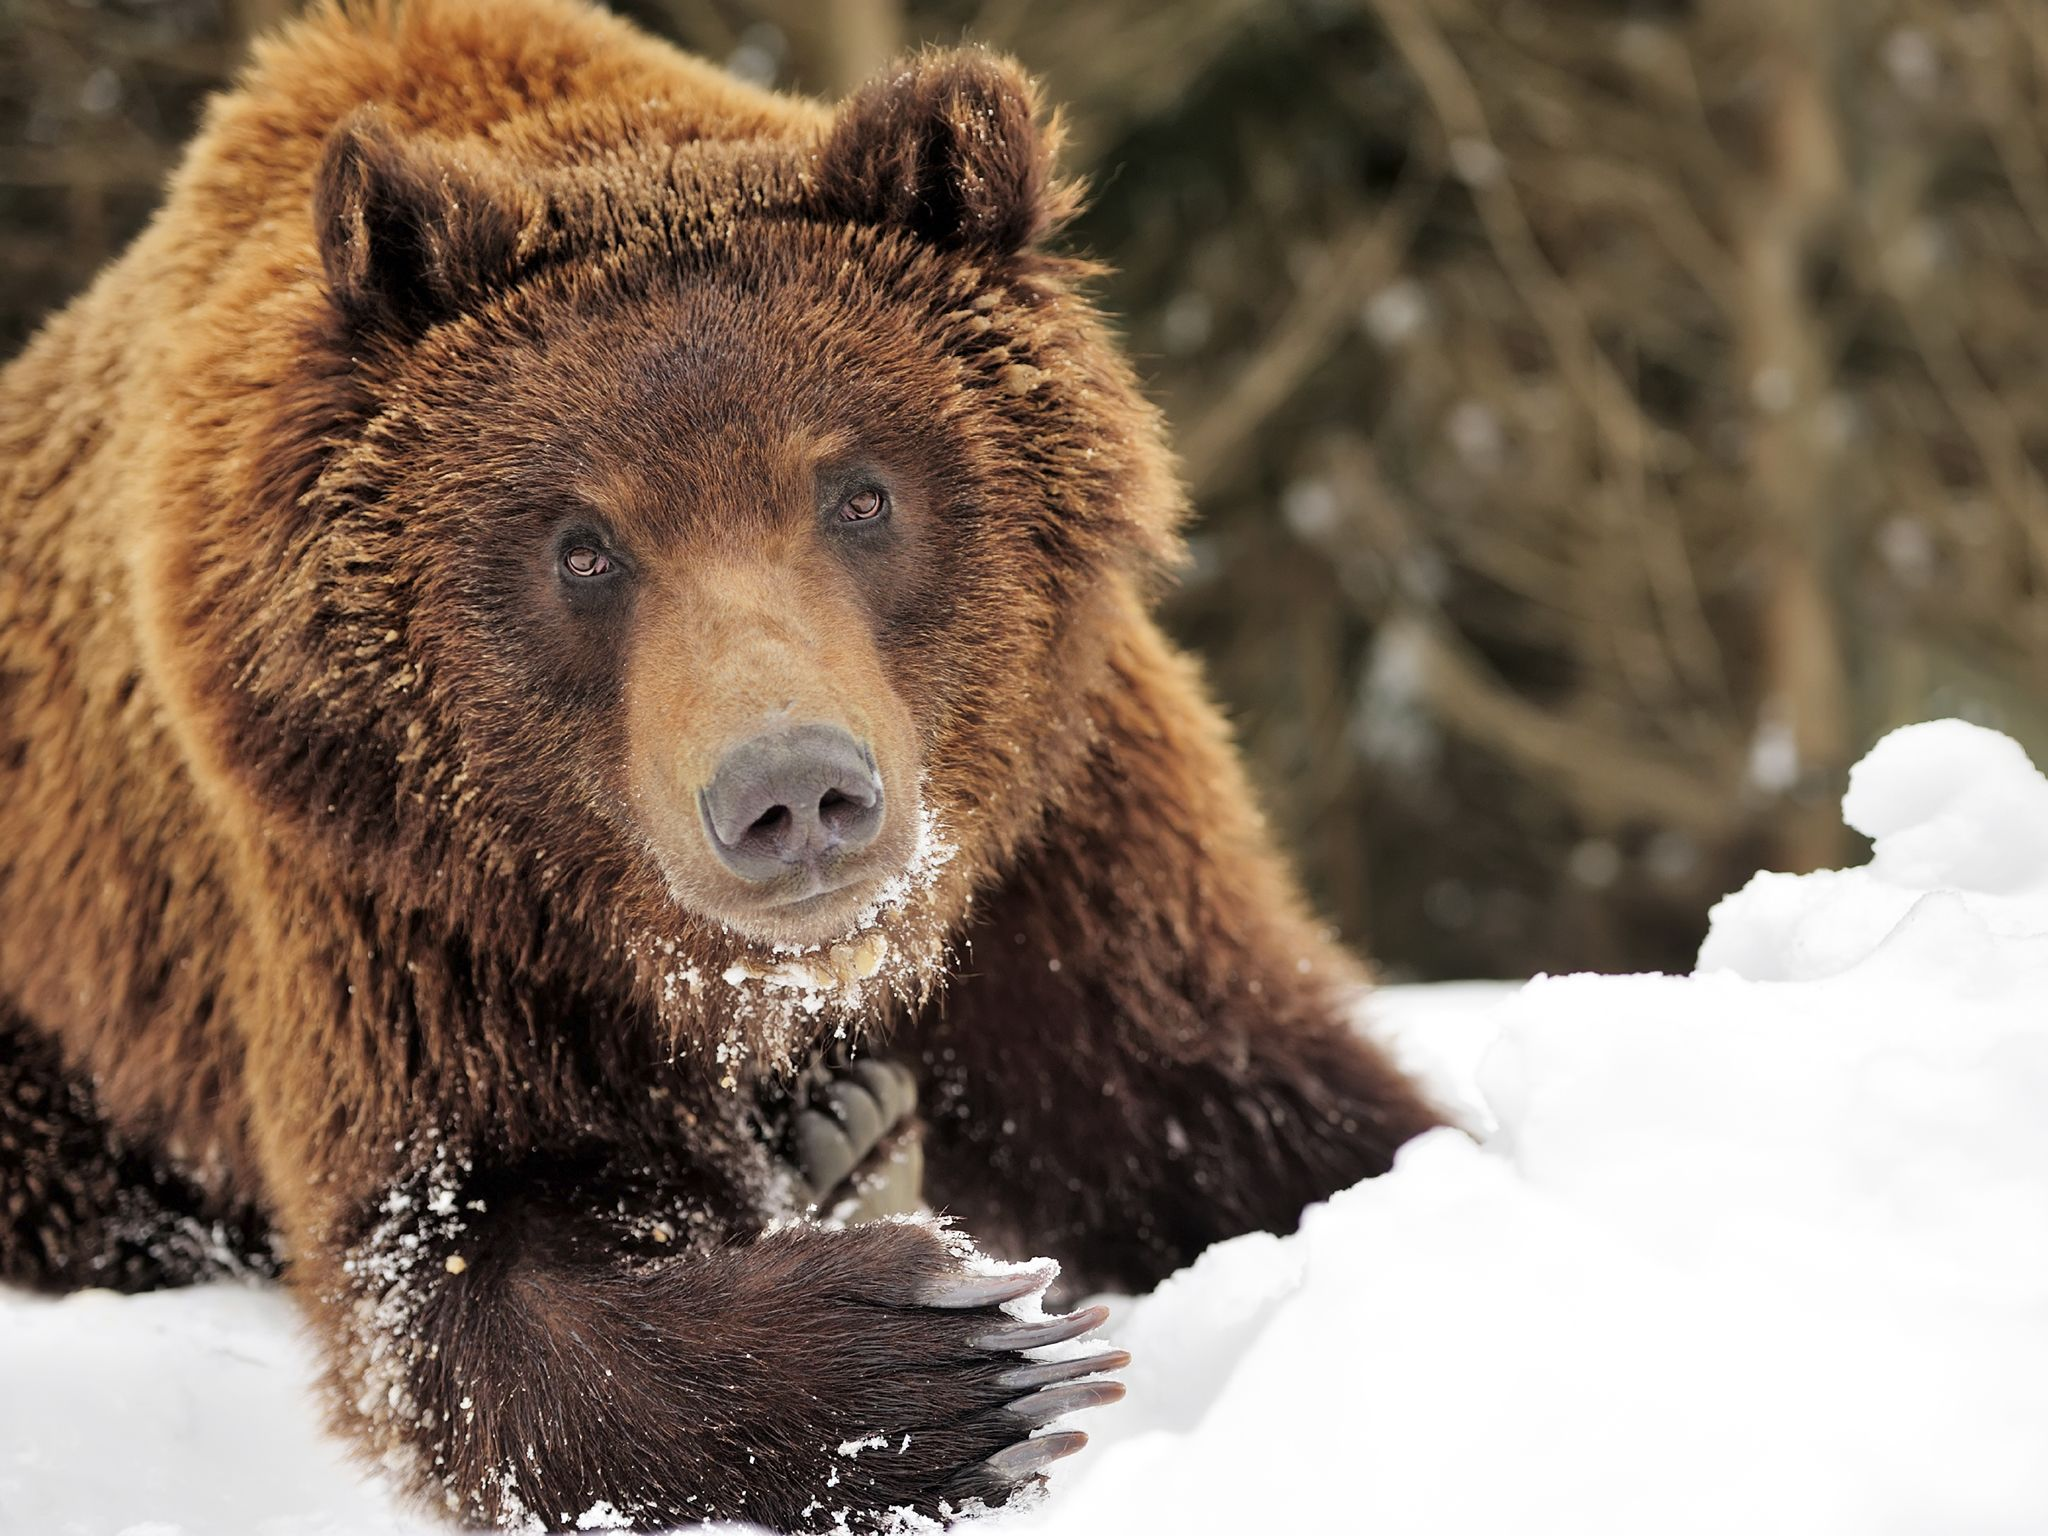 A wild brown bear in a winter forest. This image is from Winter Wonderland. [Photo of the day - دسامبر 2015]